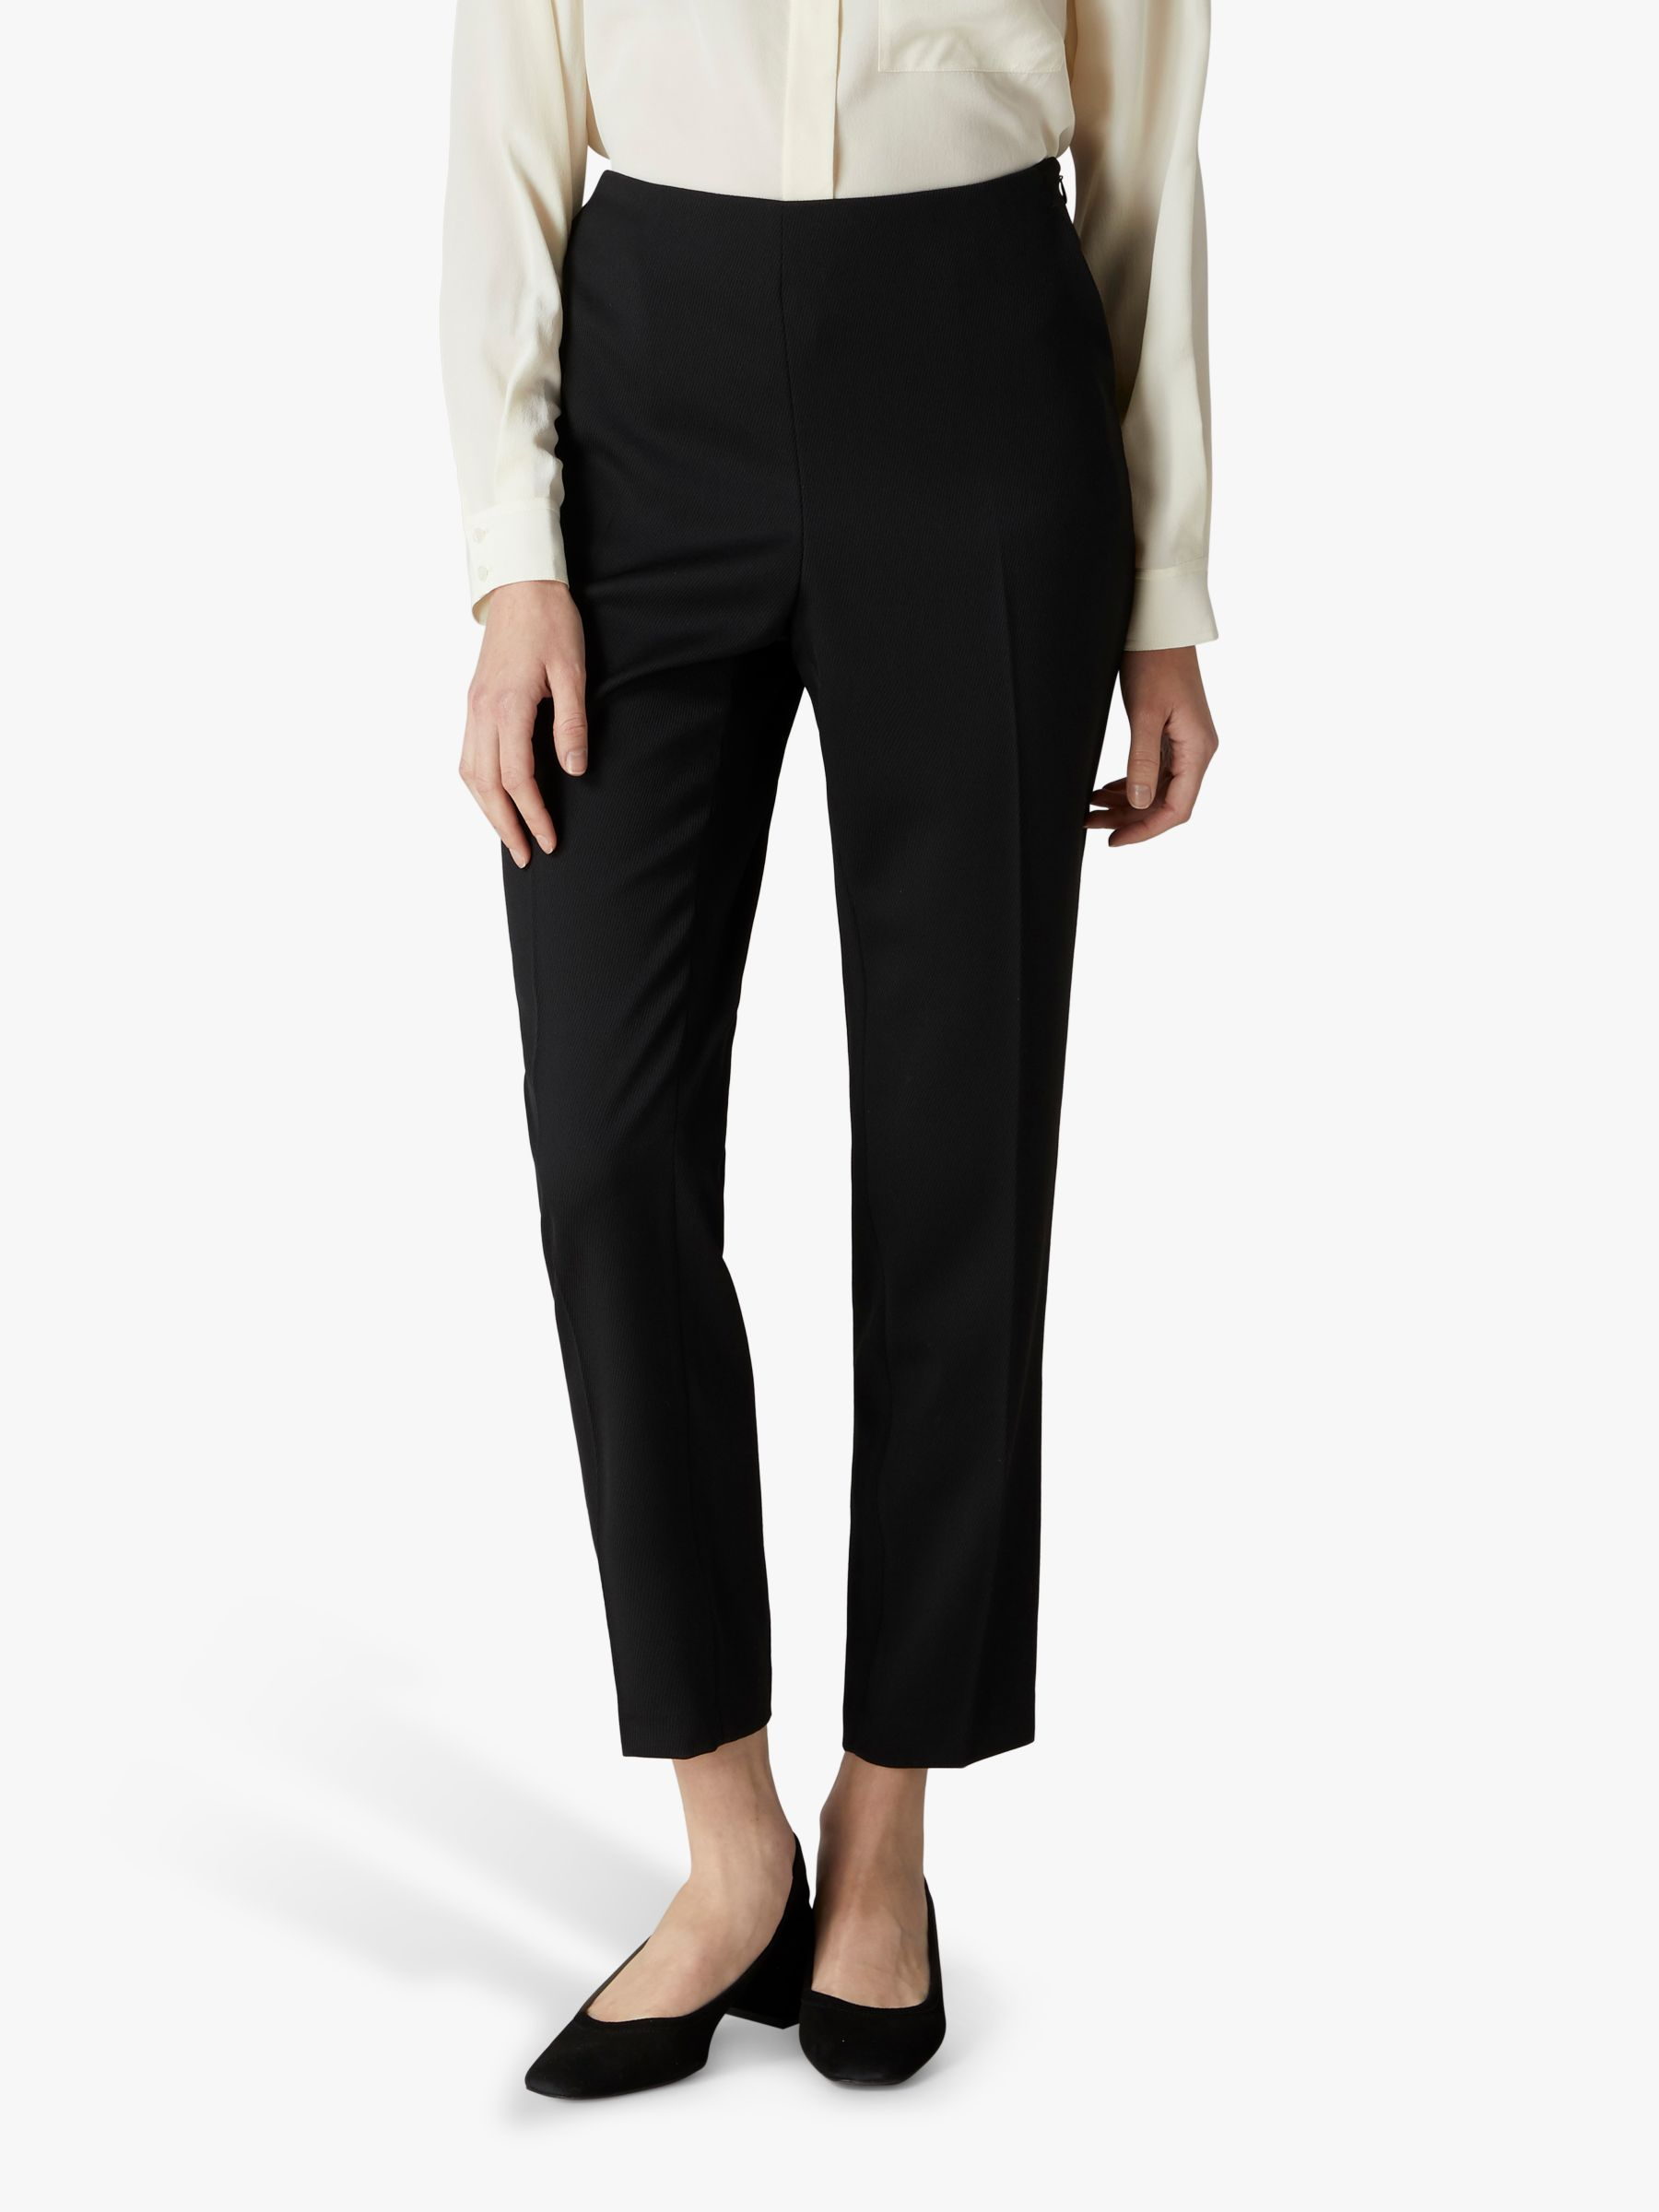 Jaeger Jaeger Grosgrain Trim Trousers, Black